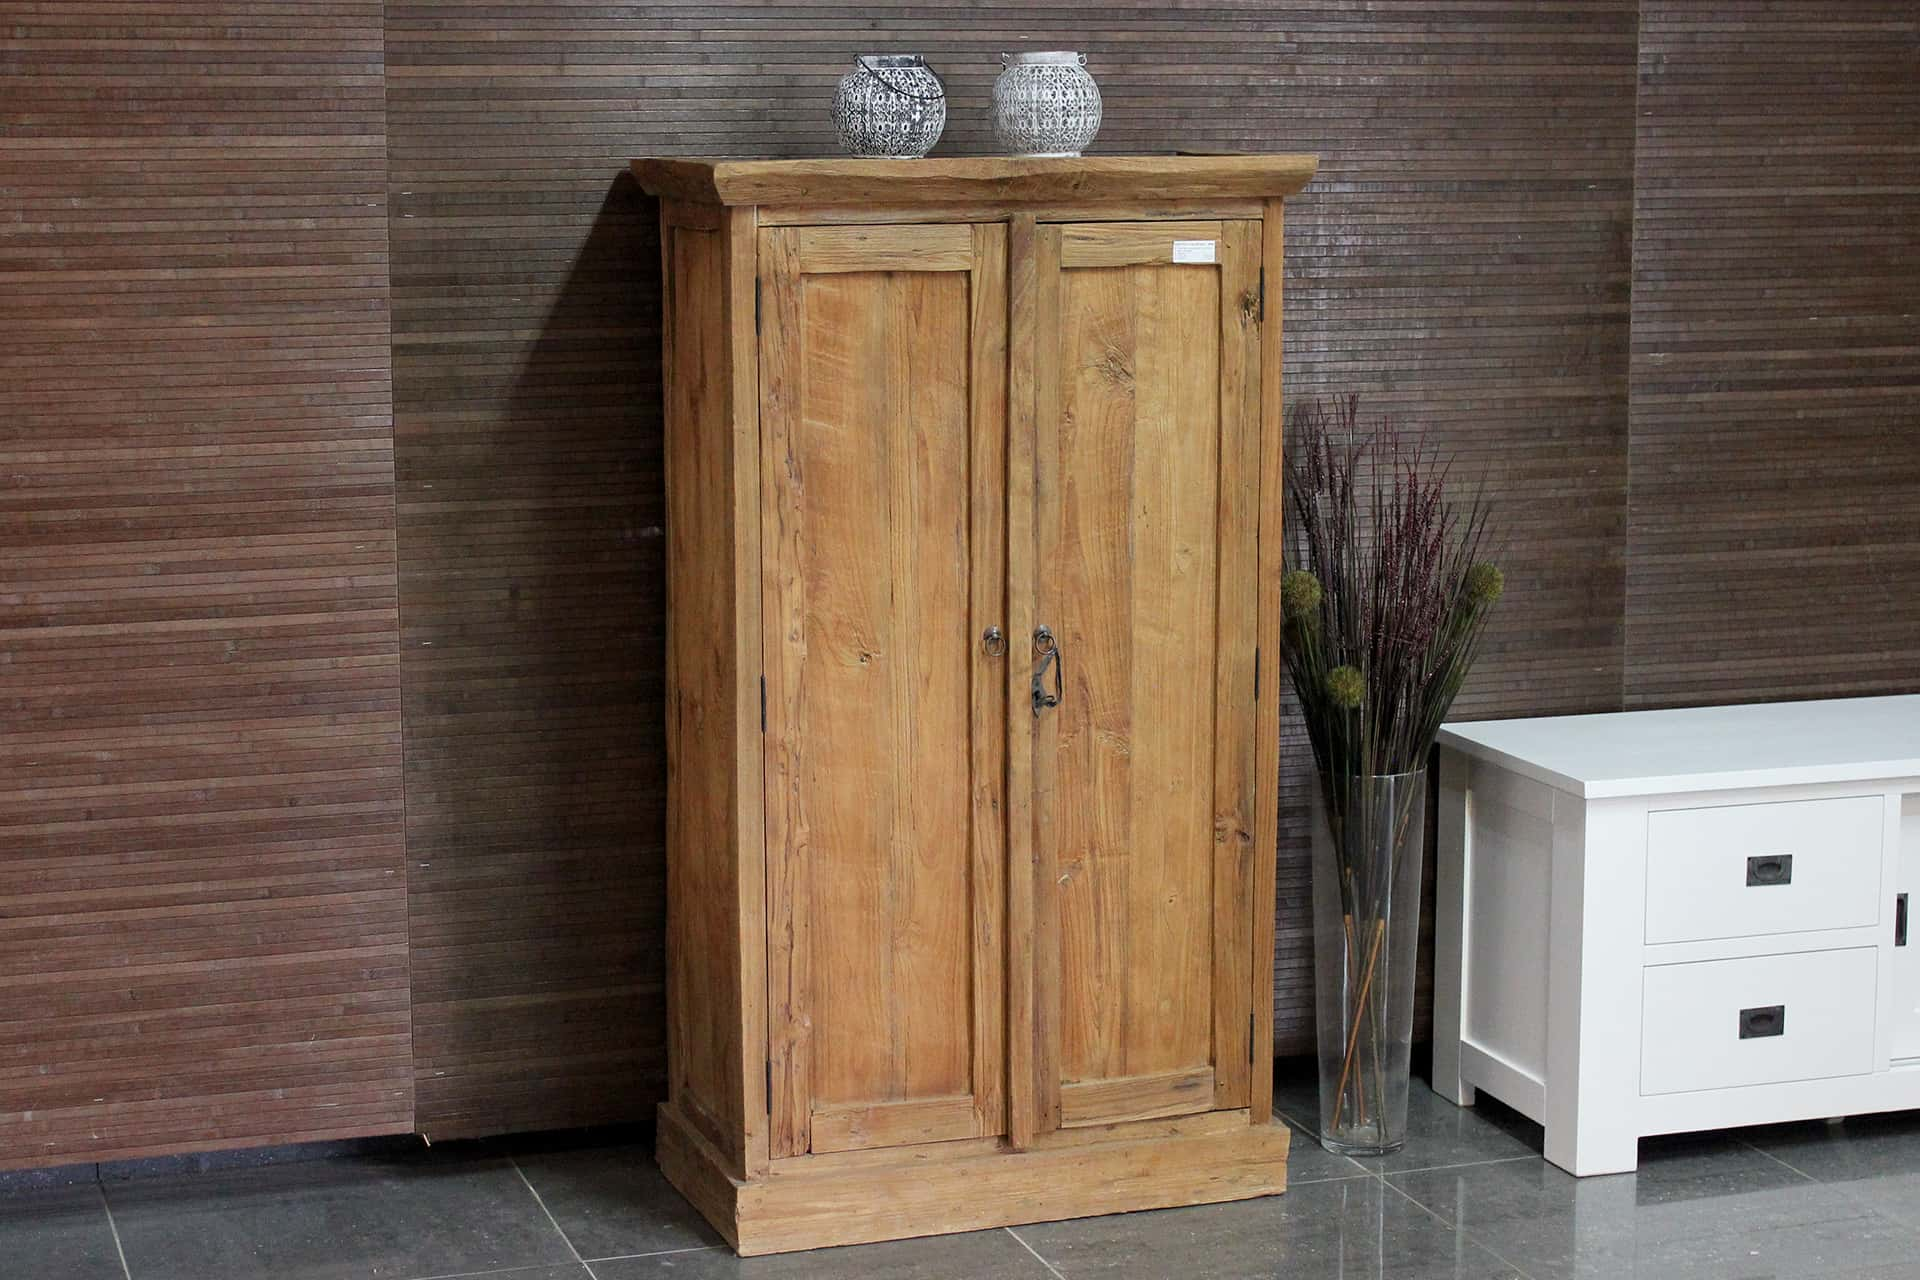 Cuci Rata Laci 90 Old | teak cabinet from Indonesia with revolving doors and drawers behind the doors. Small and separate teak wall cabinet - furniture shop TEAK2.